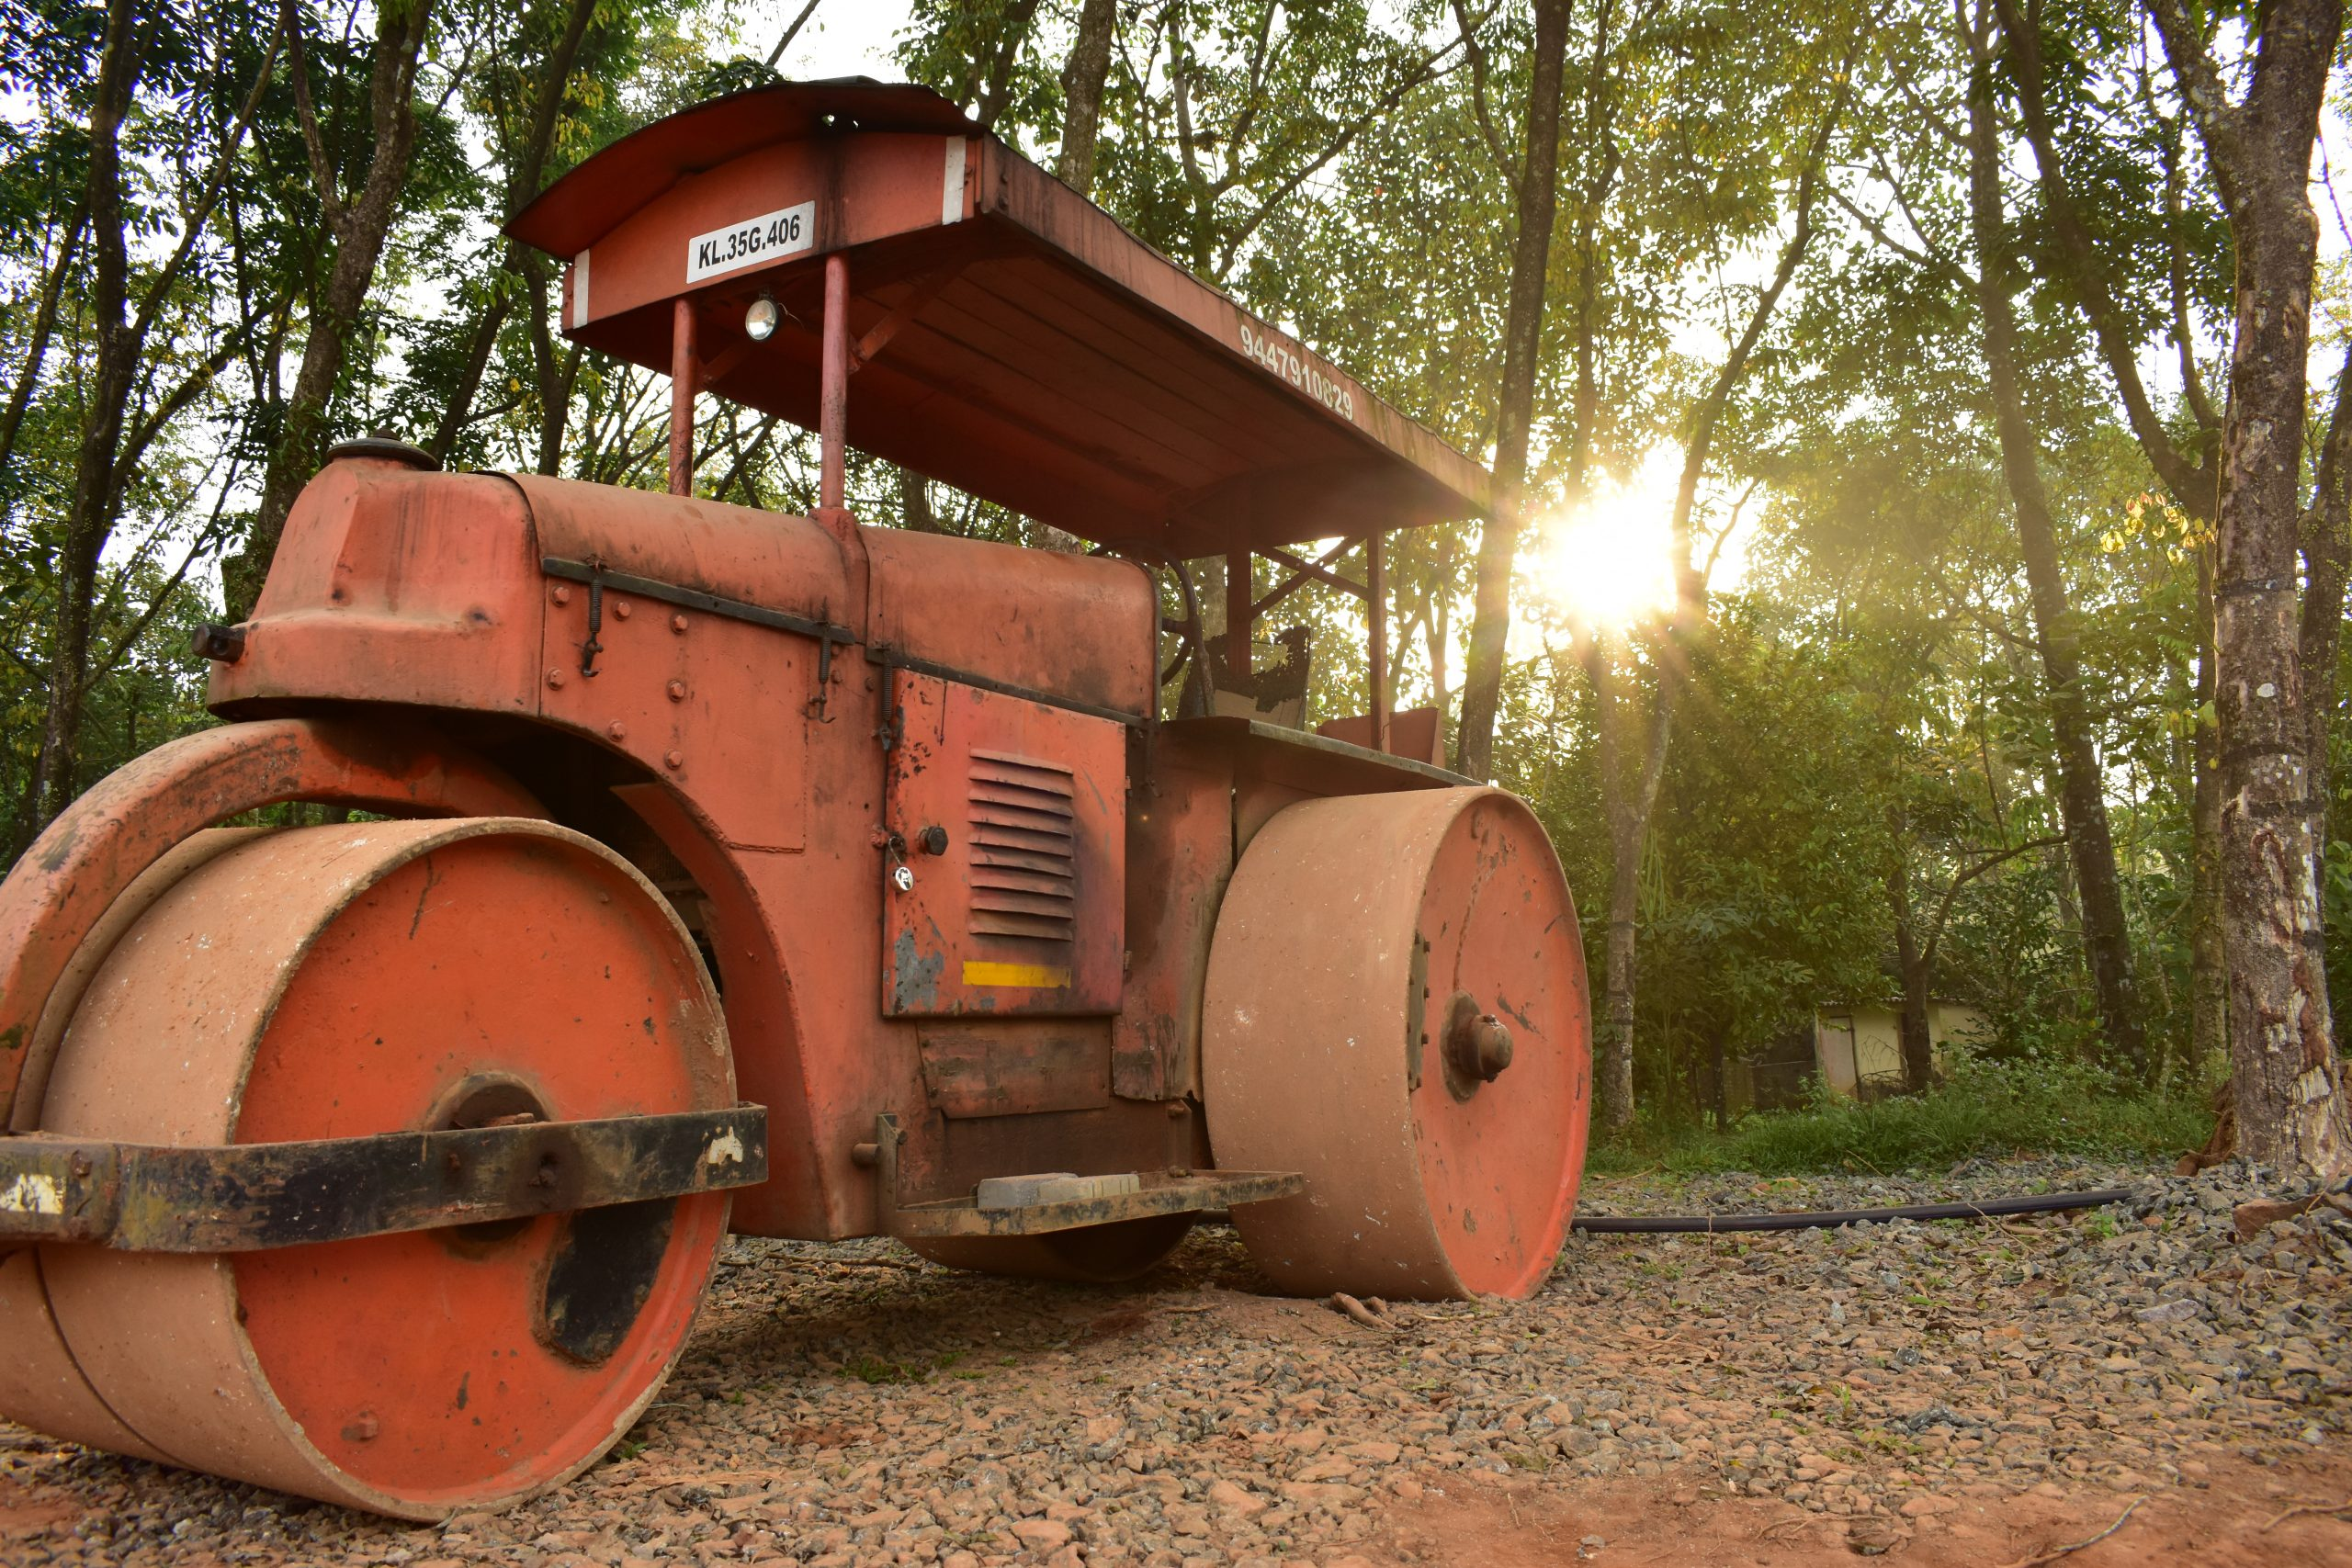 A road roller in a forest